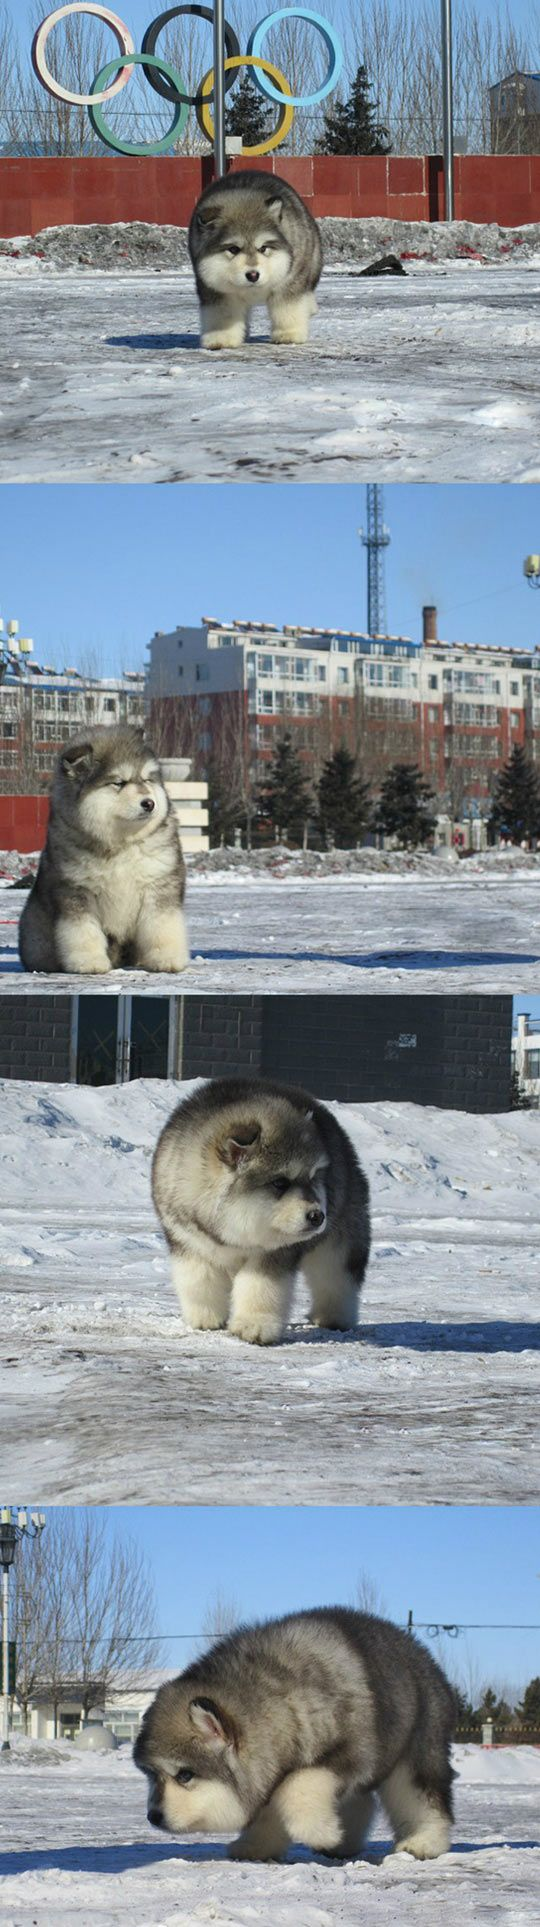 THAT MIGHT BE THE MOST FATES,FLUFFIEST AND ALMOST CUTEST DOG I HAVE EVER SEEN!!!!